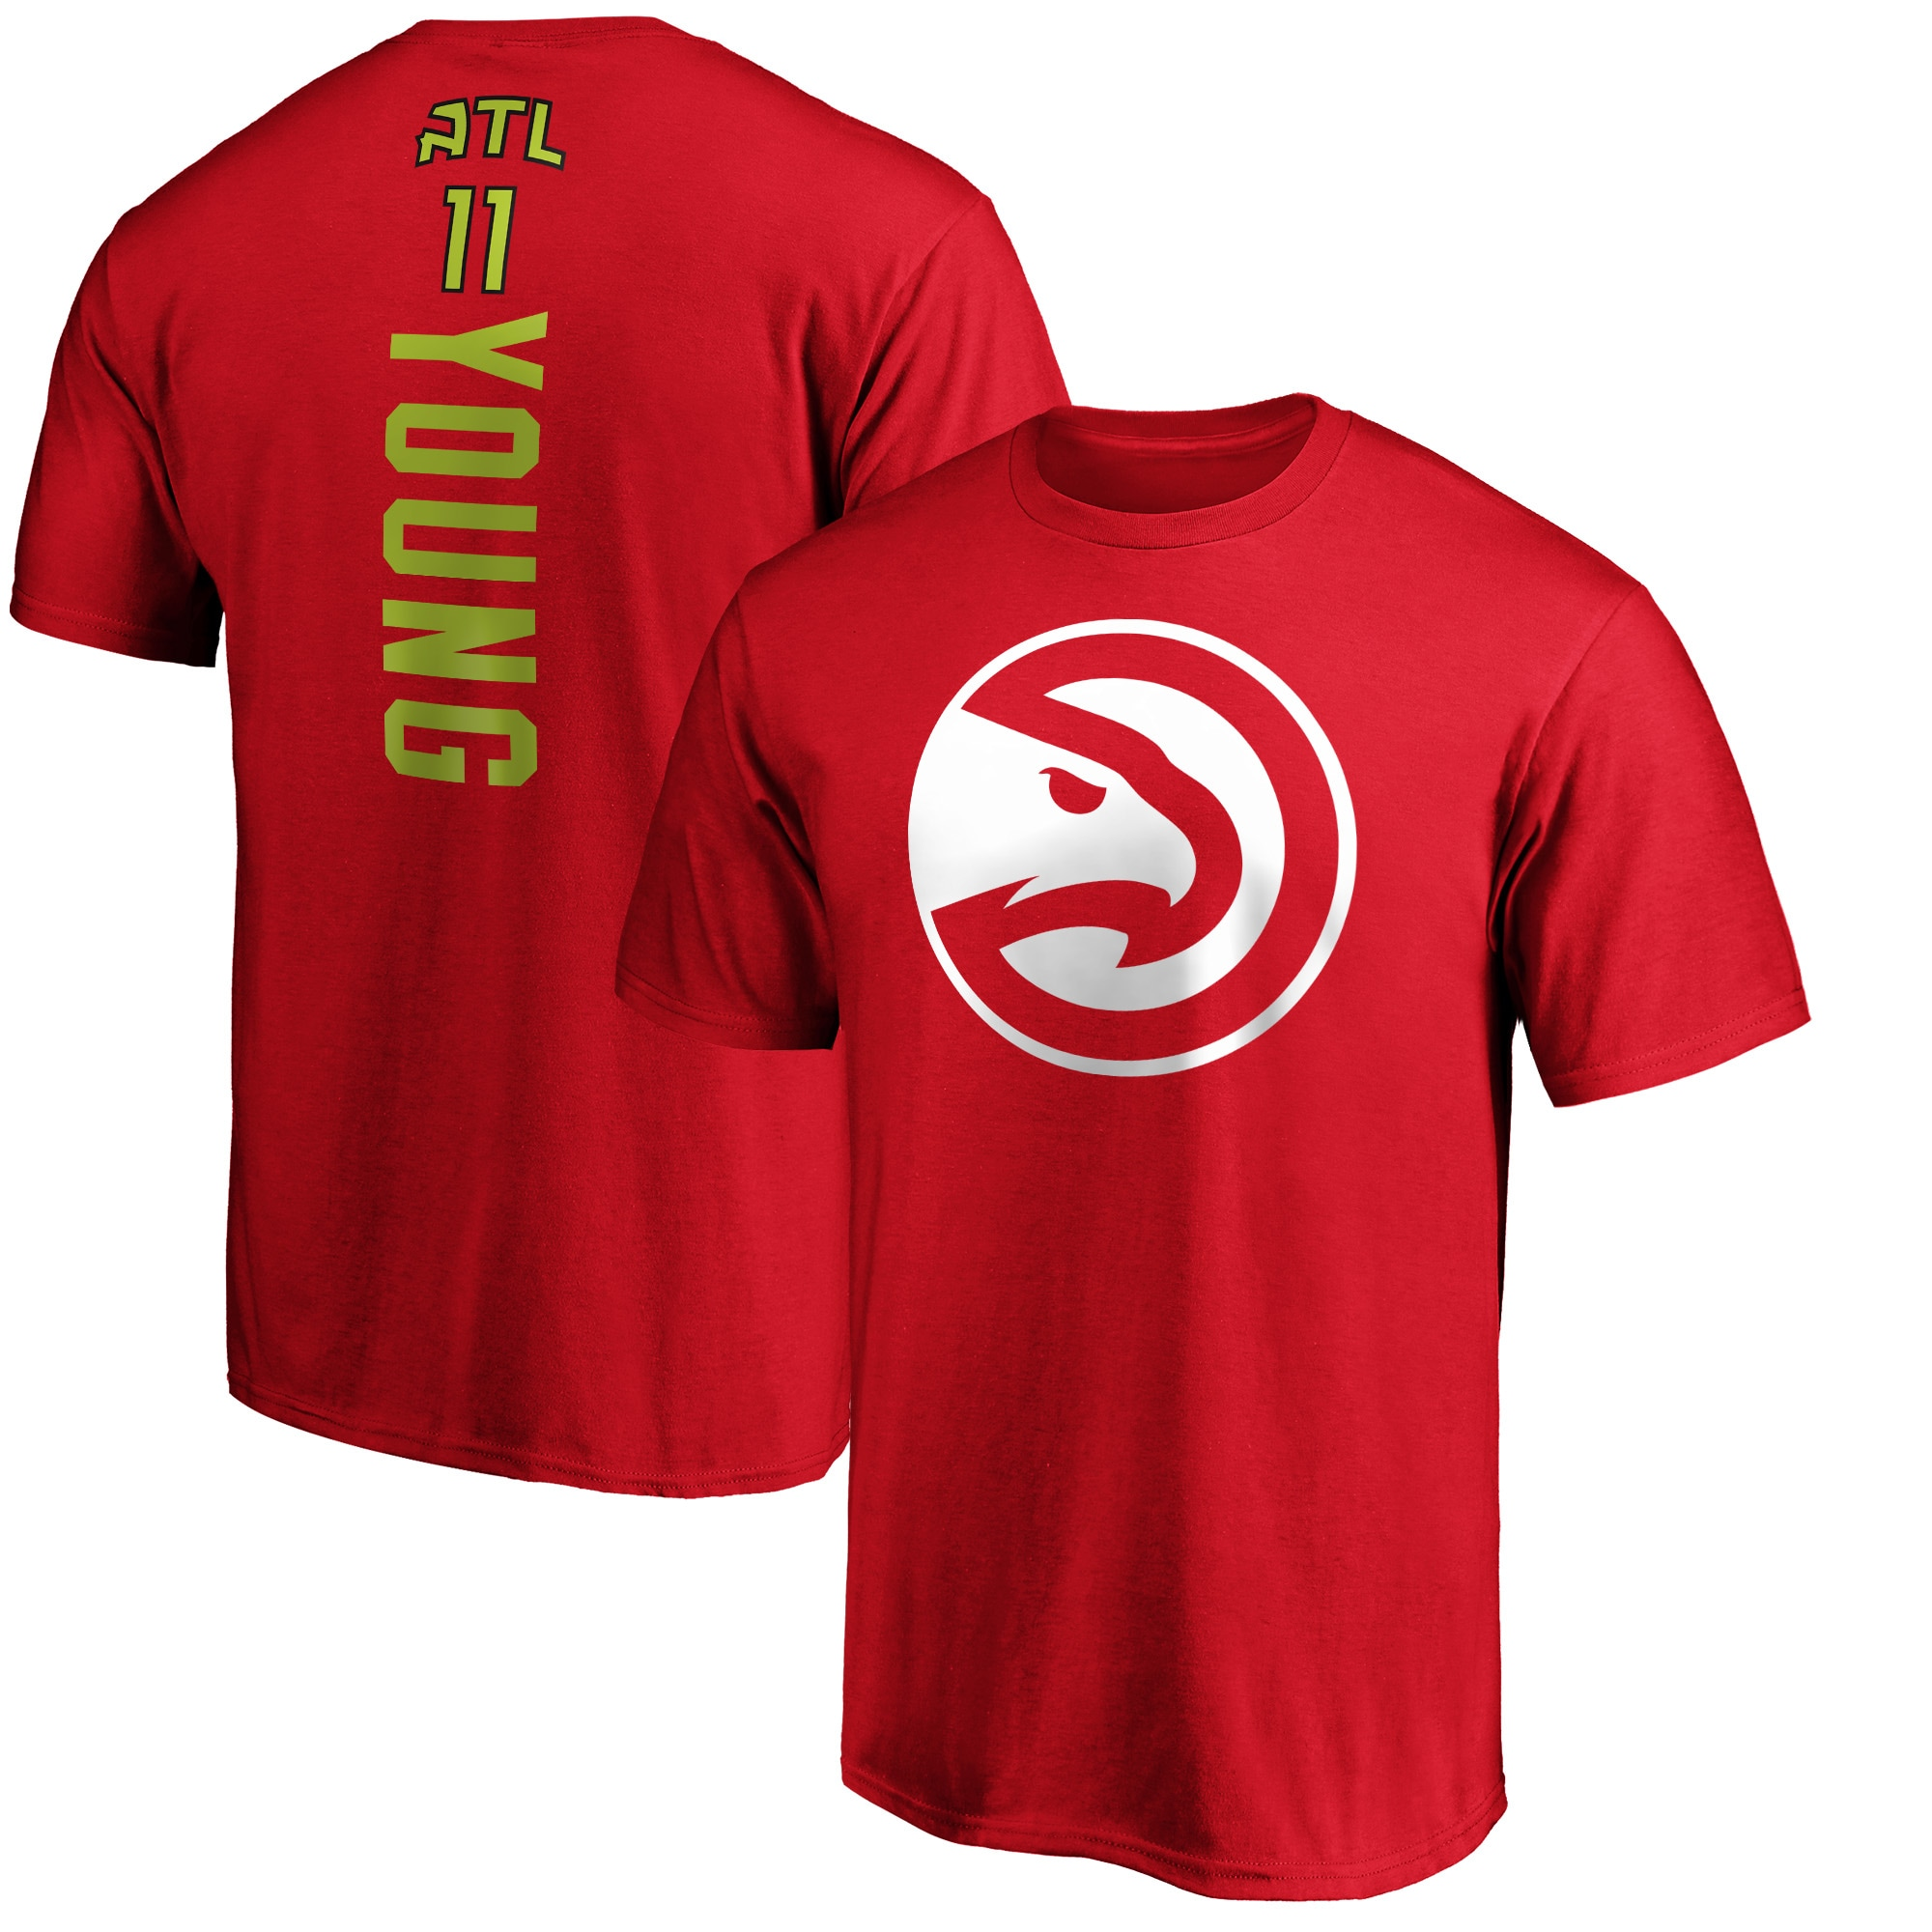 Trae Young Atlanta Hawks Fanatics Branded Big & Tall Playmaker Name & Number Team T-Shirt - Red